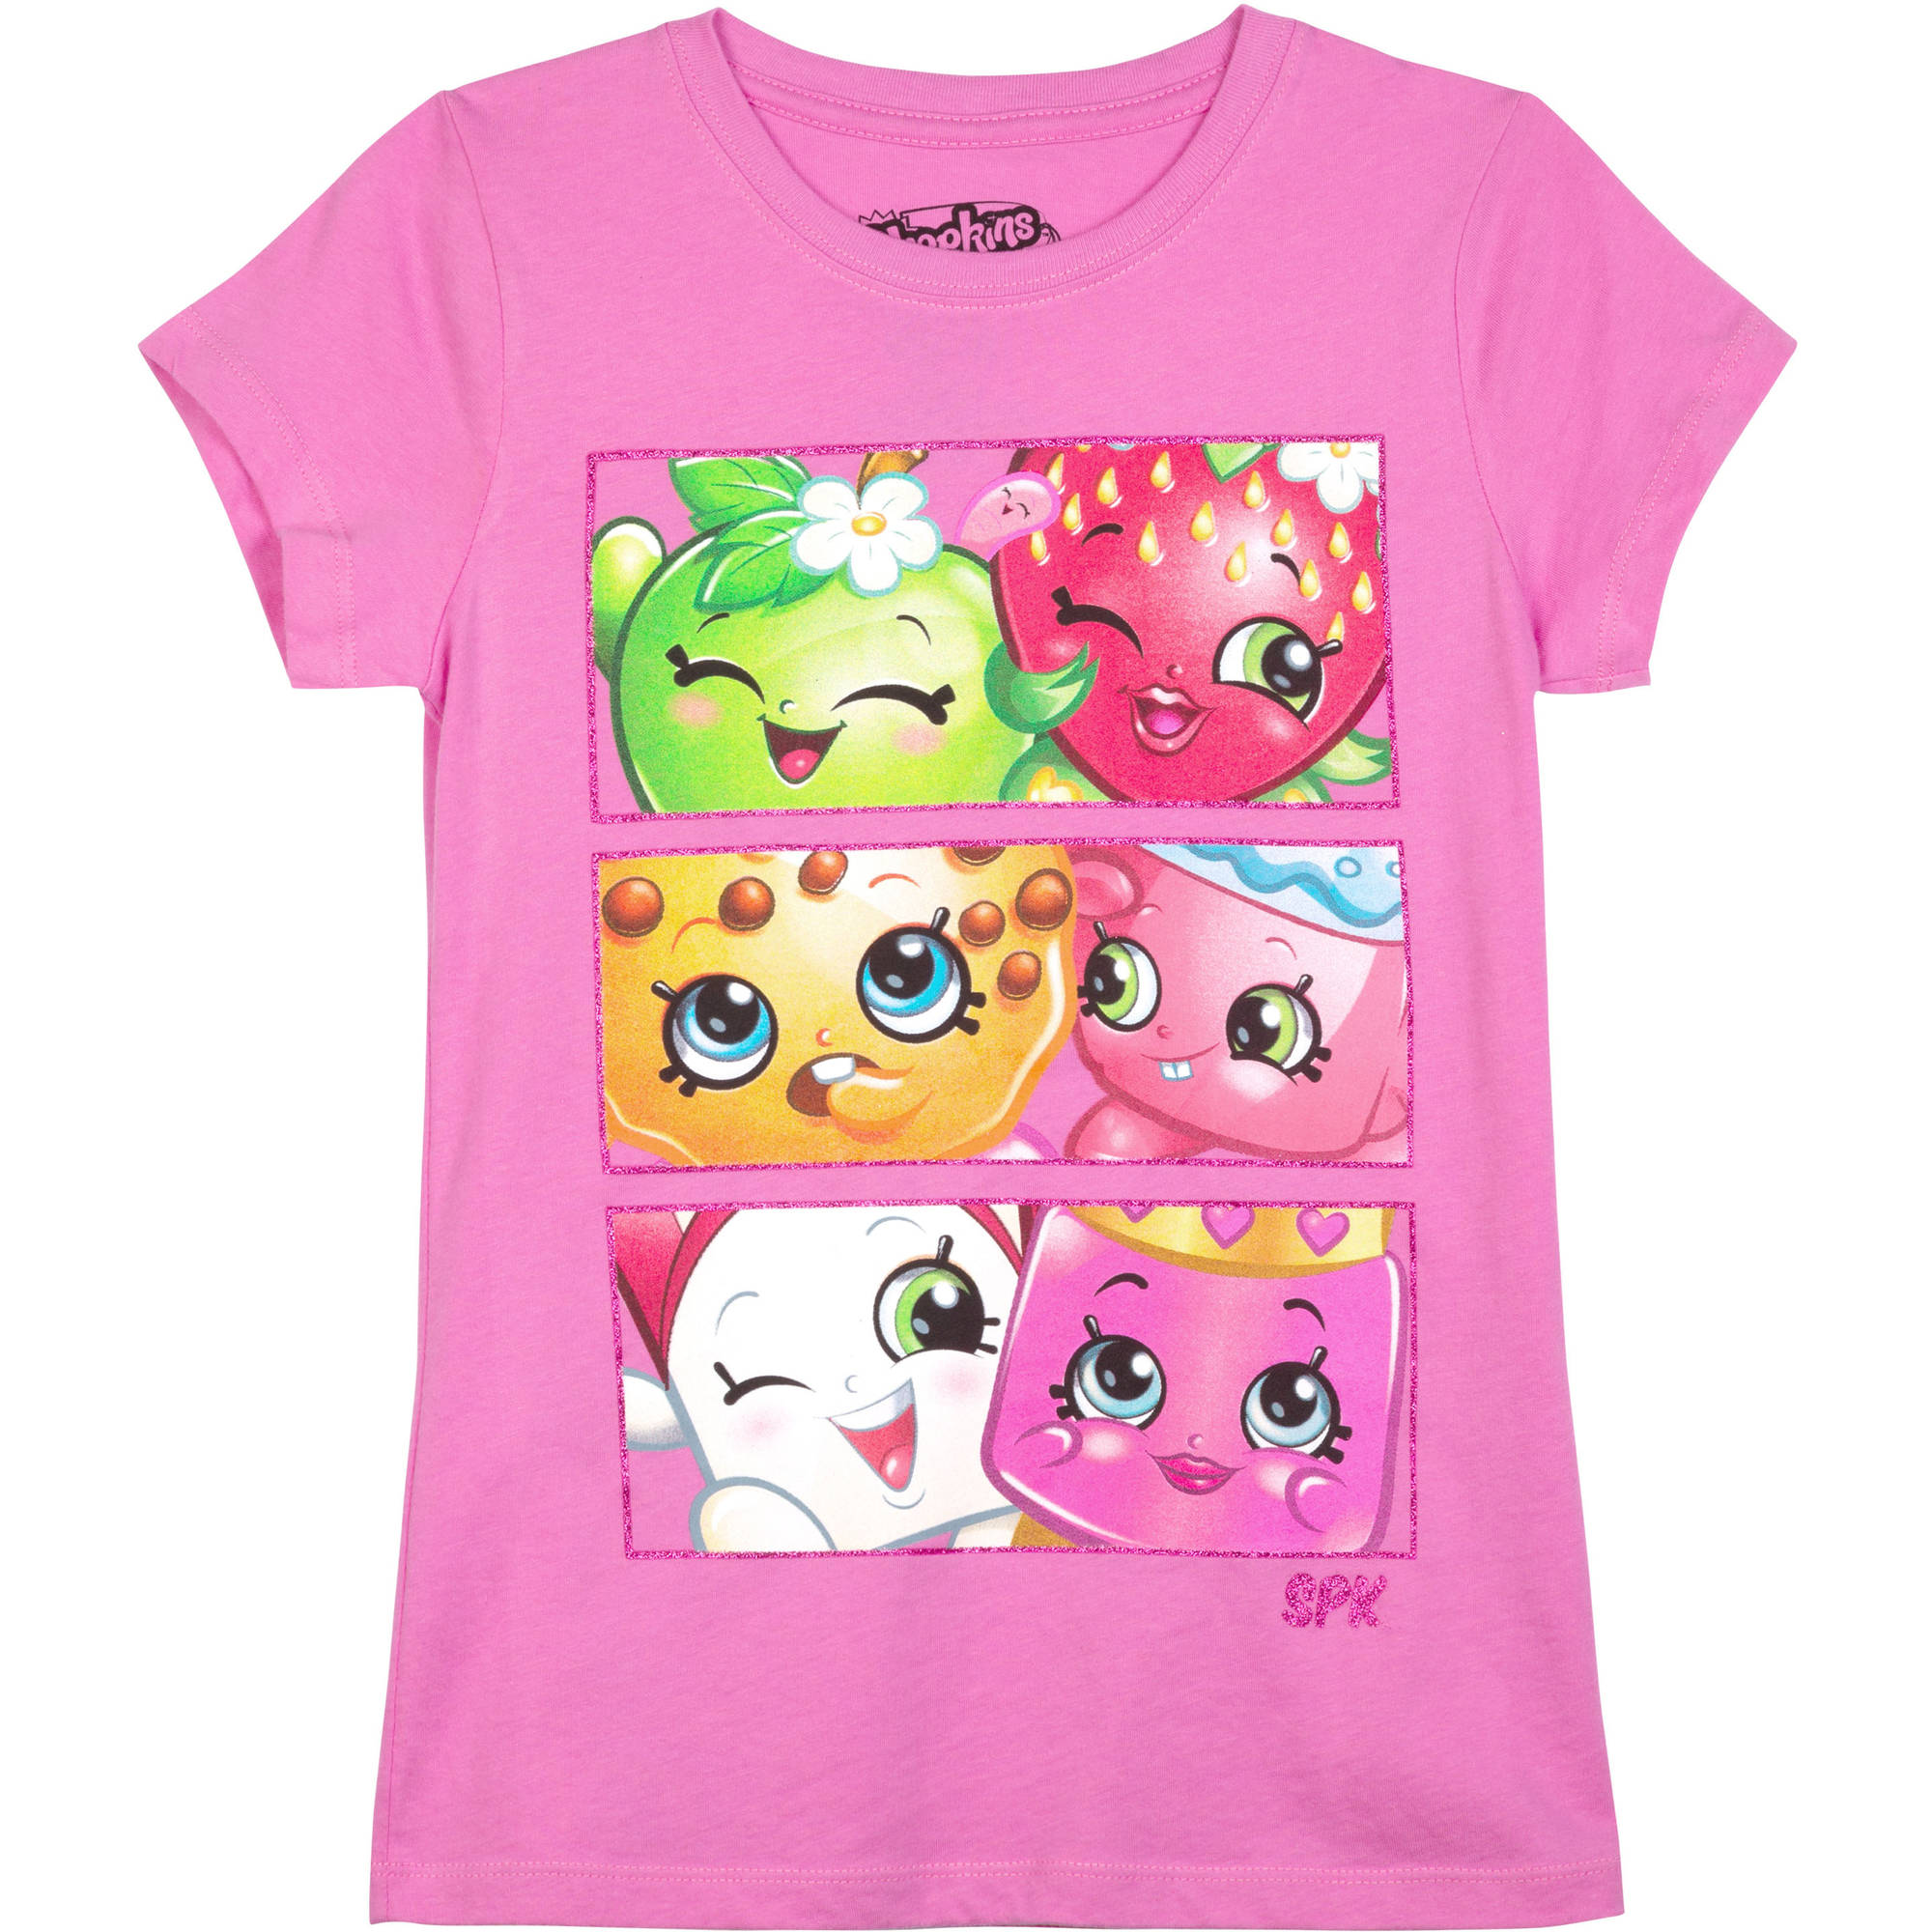 Shopkins Girls' Buddies Short Sleeve Crew Neck Graphic Tee